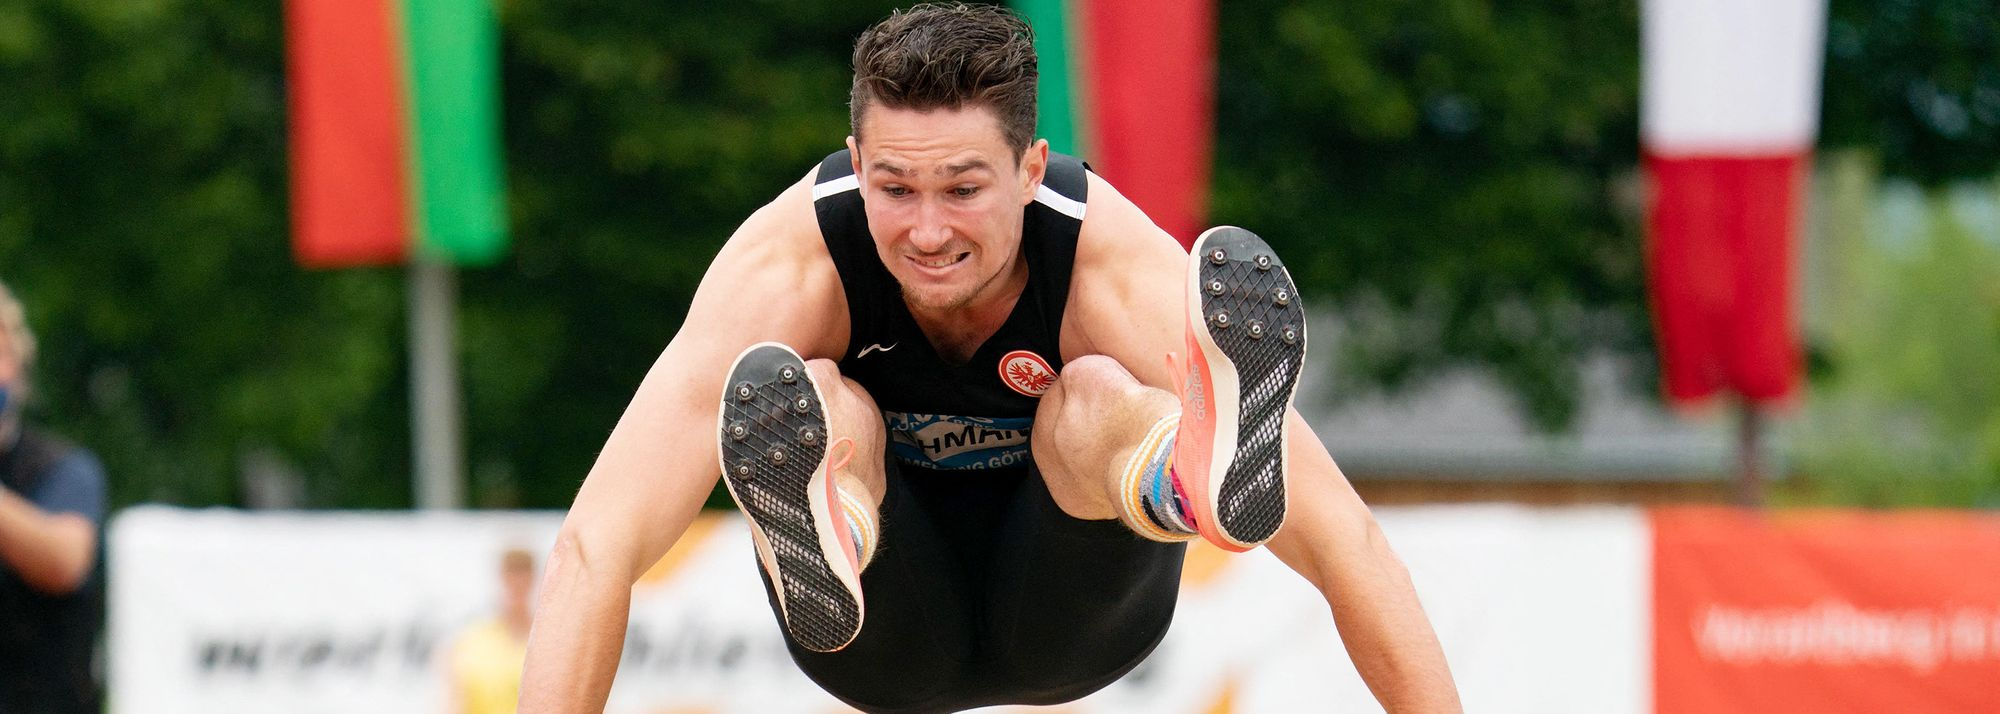 With many combined events athletes seeking a last-ditch attempt at boosting their Olympic selection chances, the first day of action at the Stadtwerke Mehrkampf-Meeting in Ratingen, part of the World Athletics Challenge – Combined Events, has been highly competitive.